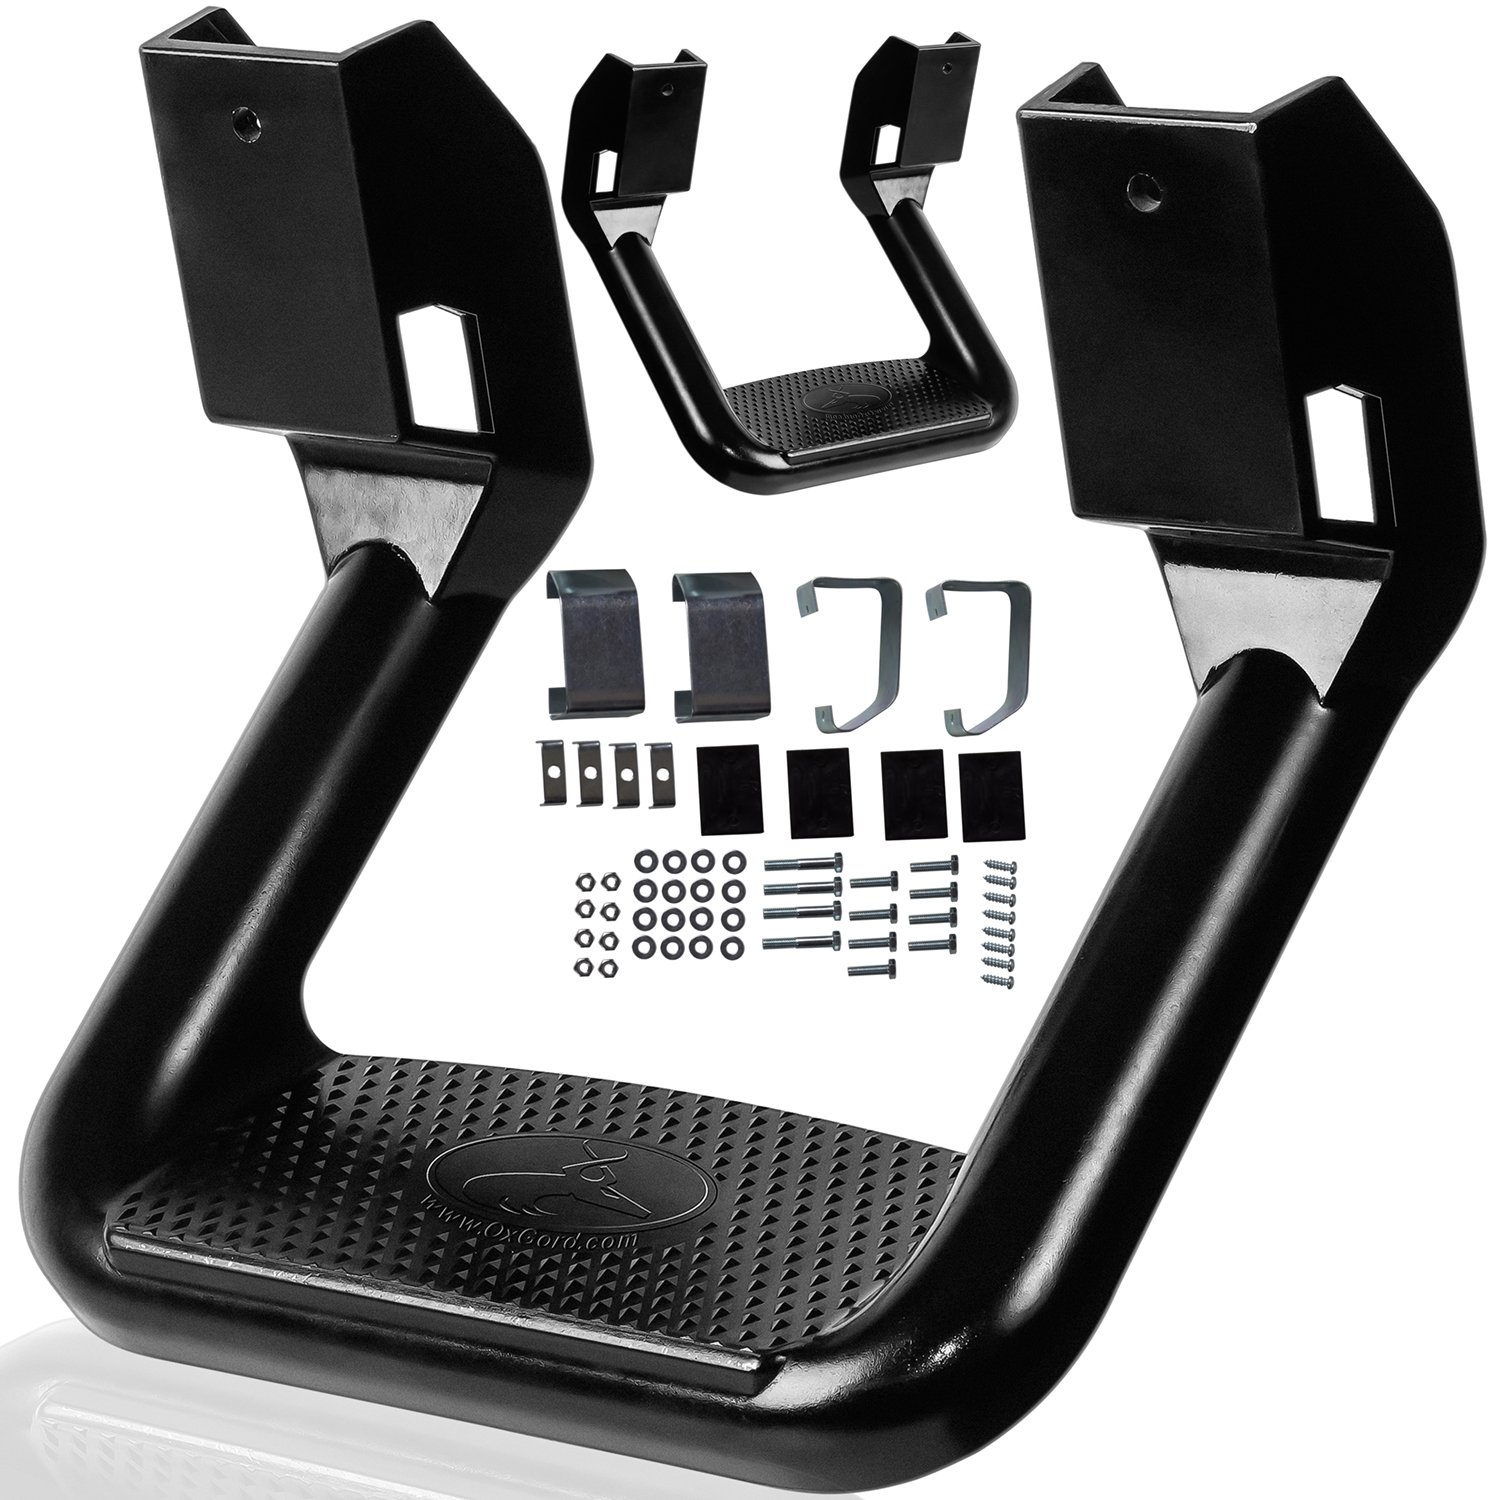 OxGord Aluminum Side Step Set Nerf Bar Best for 2002-2006 Chevrolet Avalanche 1500 for Assistance in Entering & Exiting – Max Capacity Weight 350 lbs by OxGord (Image #4)